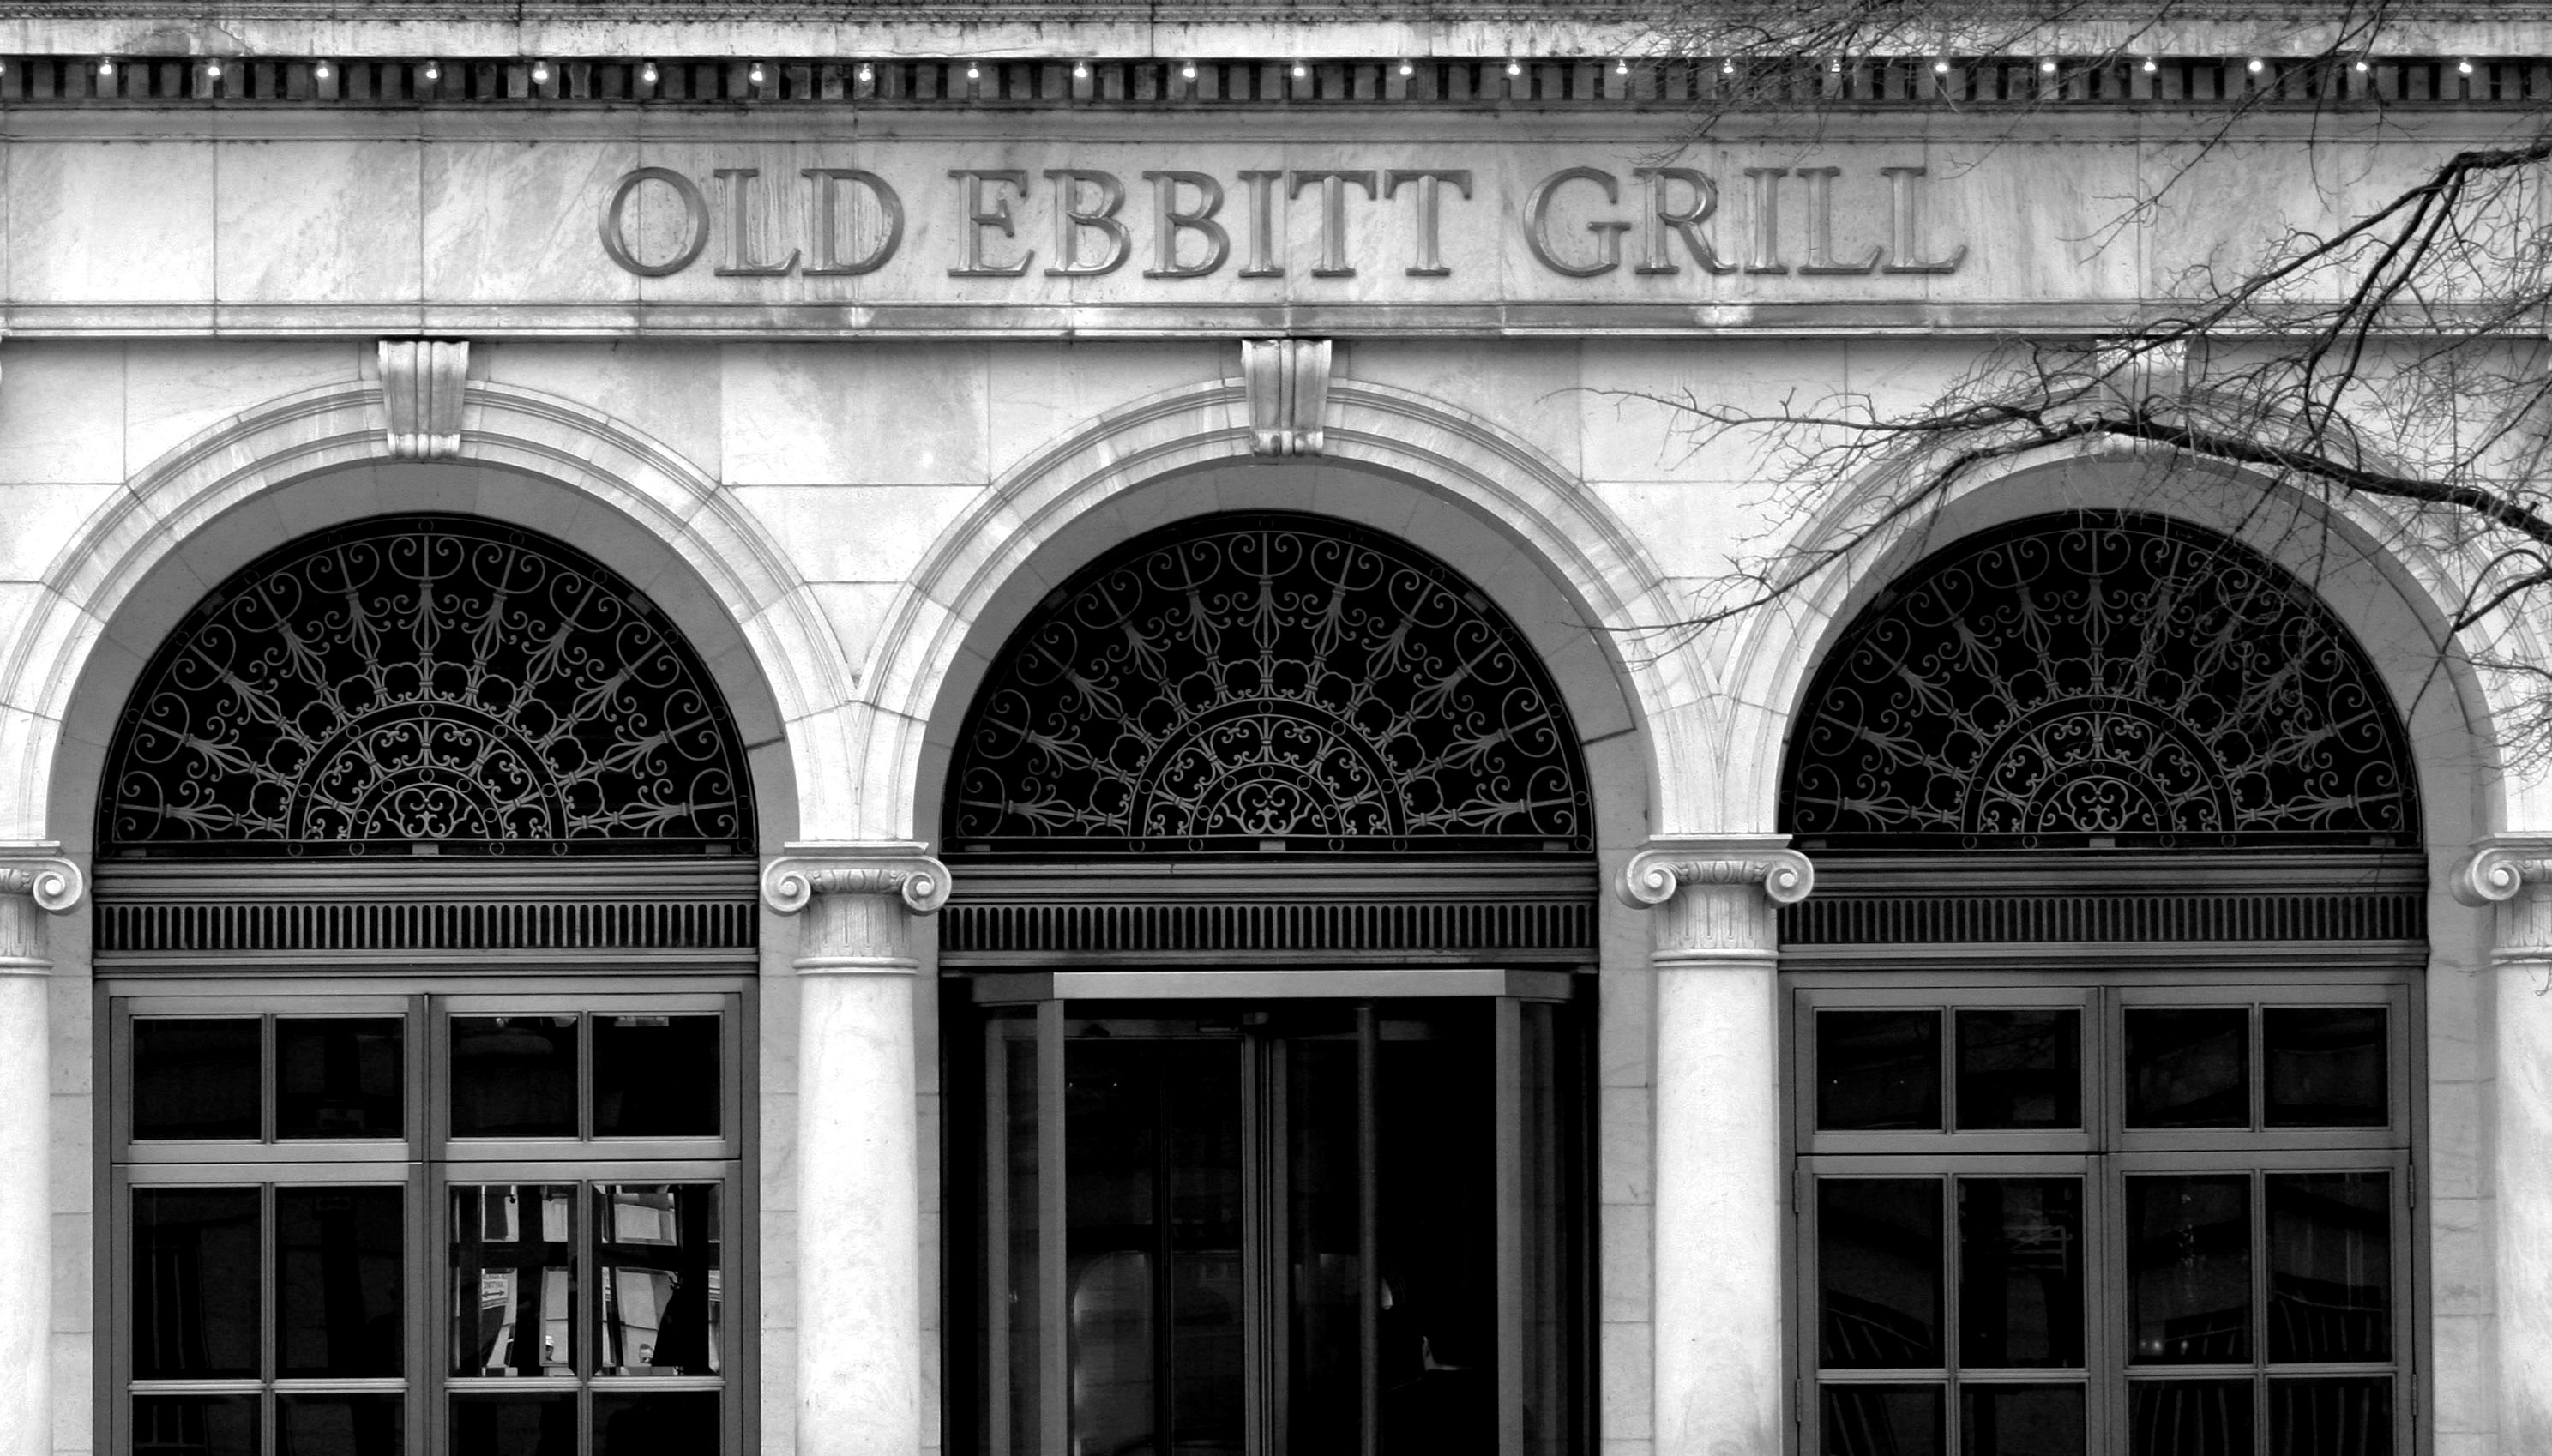 Signage above the front door to Old Ebbitt Grill. Image by dbking - Old Ebbitt Grill, CC BY 2.0, https://commons.wikimedia.org/w/index.php?curid=2895146